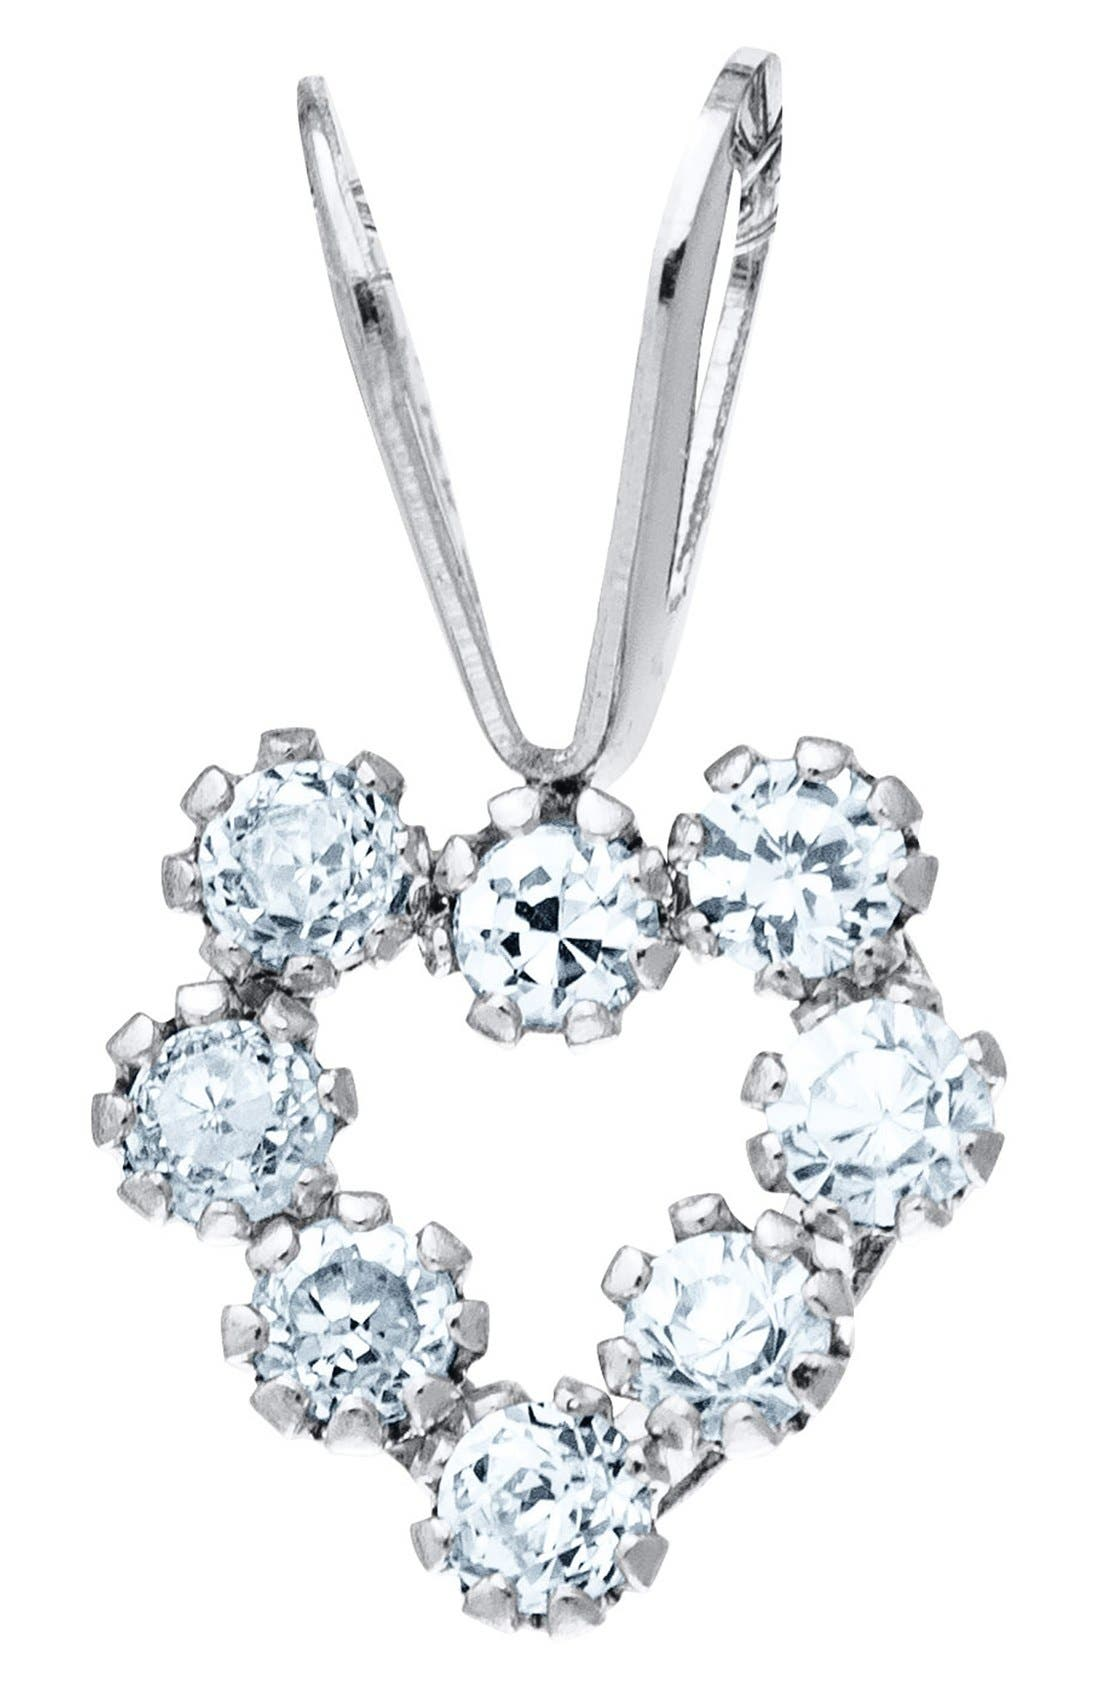 14k White Gold & Cubic Zirconia Heart Necklace,                         Main,                         color, Silver